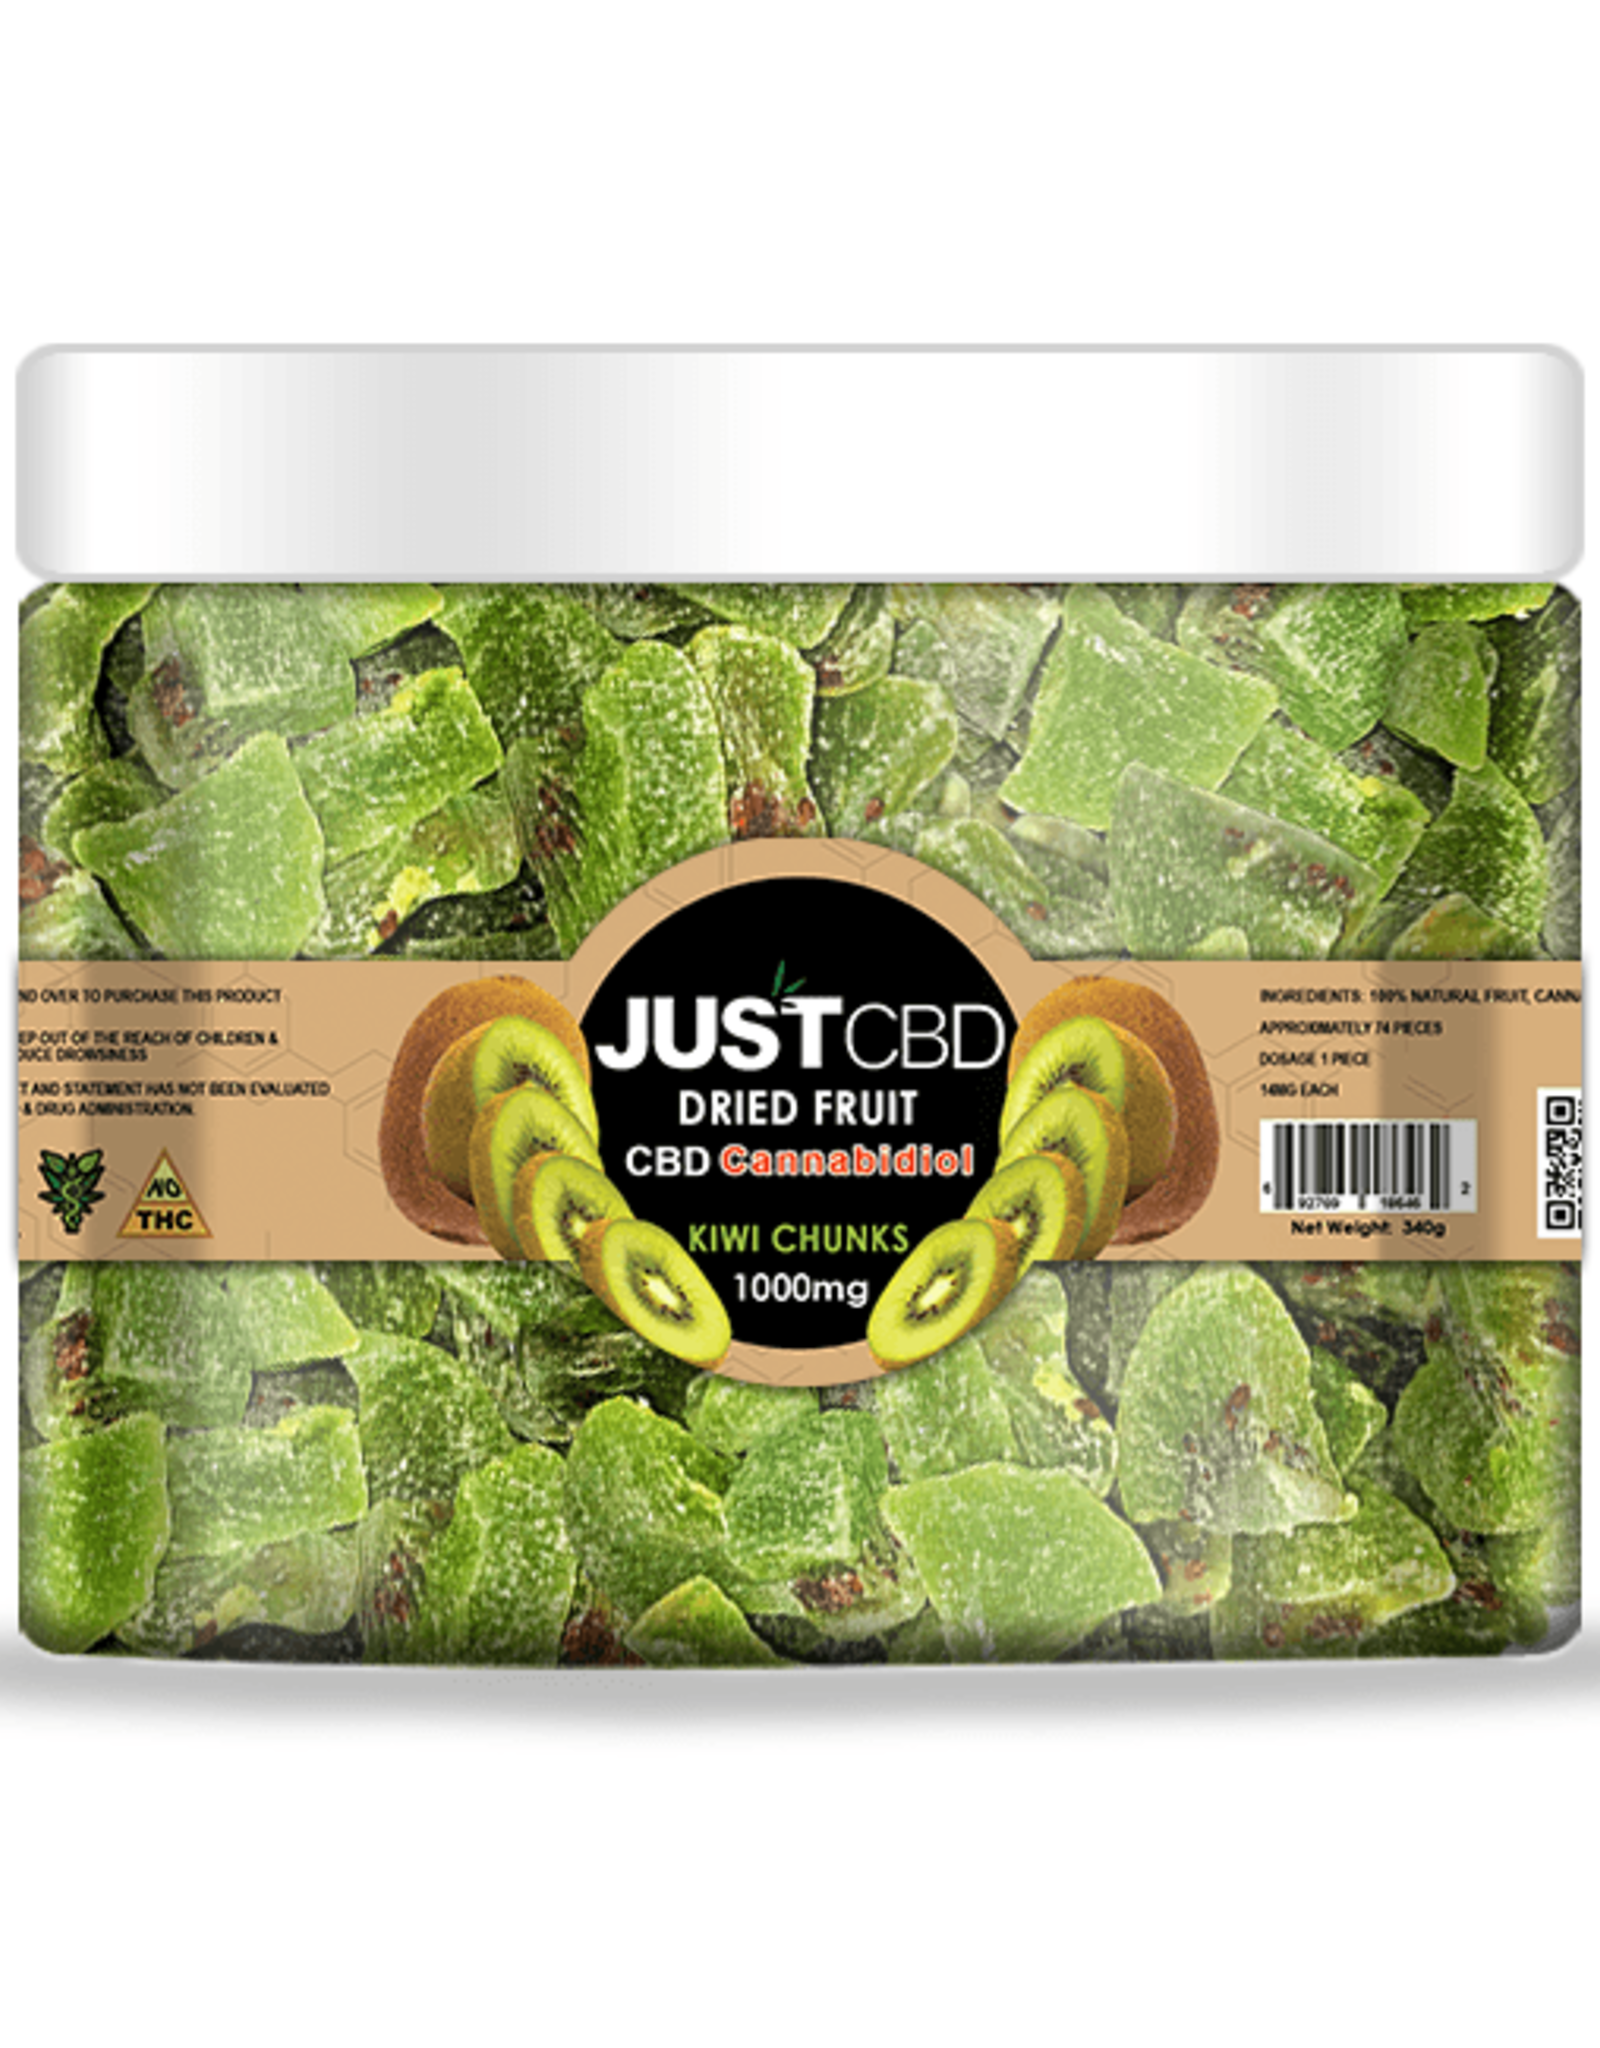 JustCBD Dried Fruit 1000mg